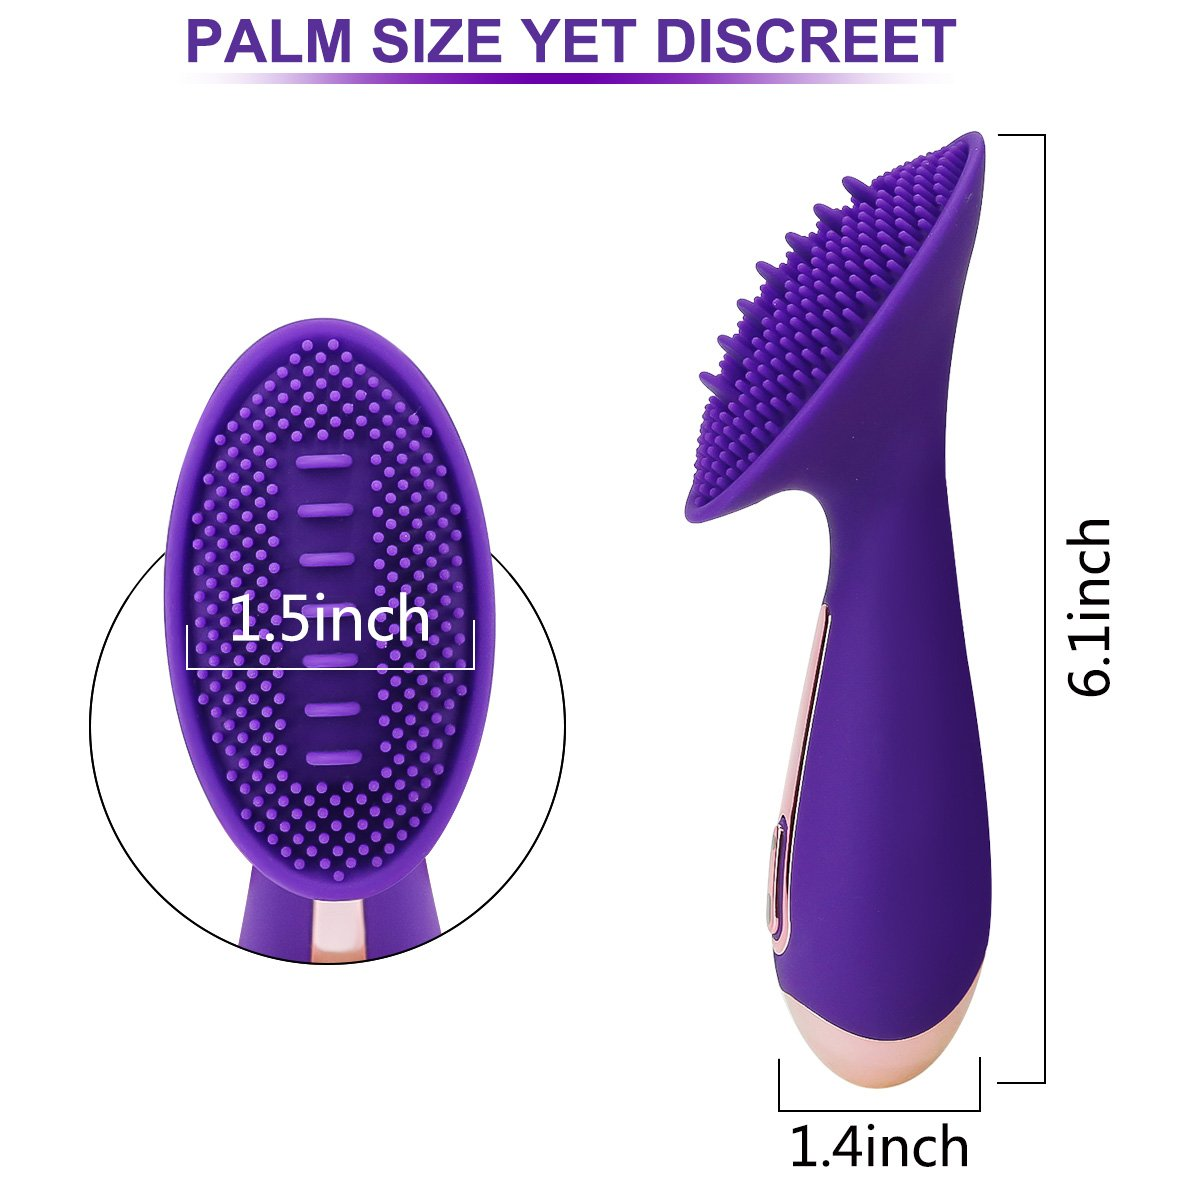 Tongue Vibrator for Clit G SpotStimulation with Soft Silicone Ticklers for Women, PALOQUETH Innovative Oral Sex Simulator Licking Adult Toy 8 Strong Vibration Modes,Quiet Rechargeable Waterproof by PALOQUETH (Image #6)